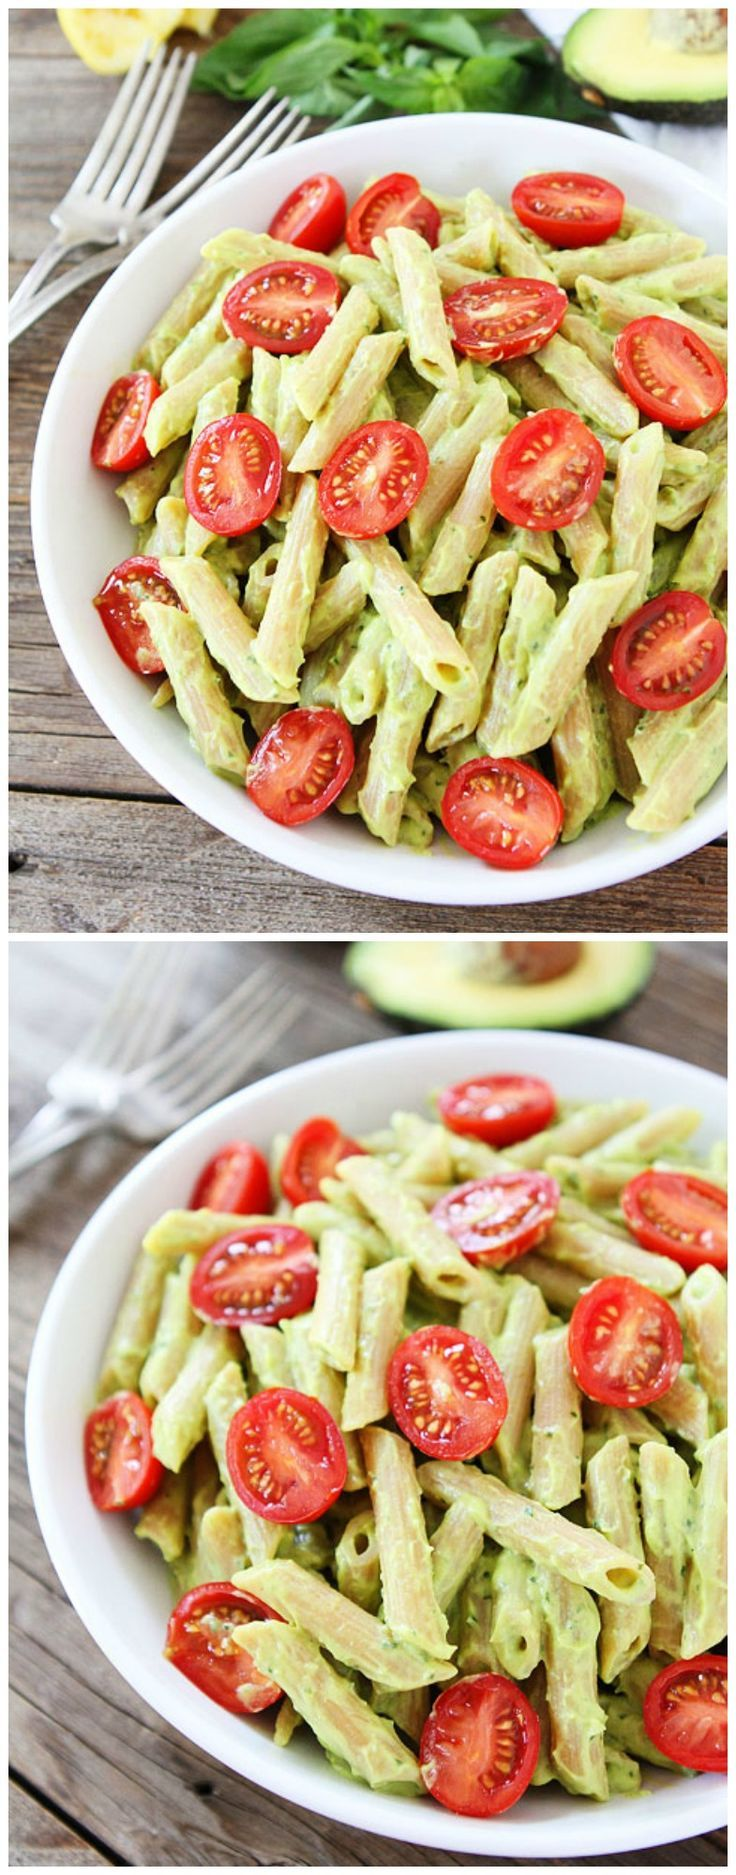 Avocado Goat Cheese Pasta Recipe on http://twopeasandtheirpod.com This creamy pasta dish can be made in 20 minutes! It is a great weeknight meal!